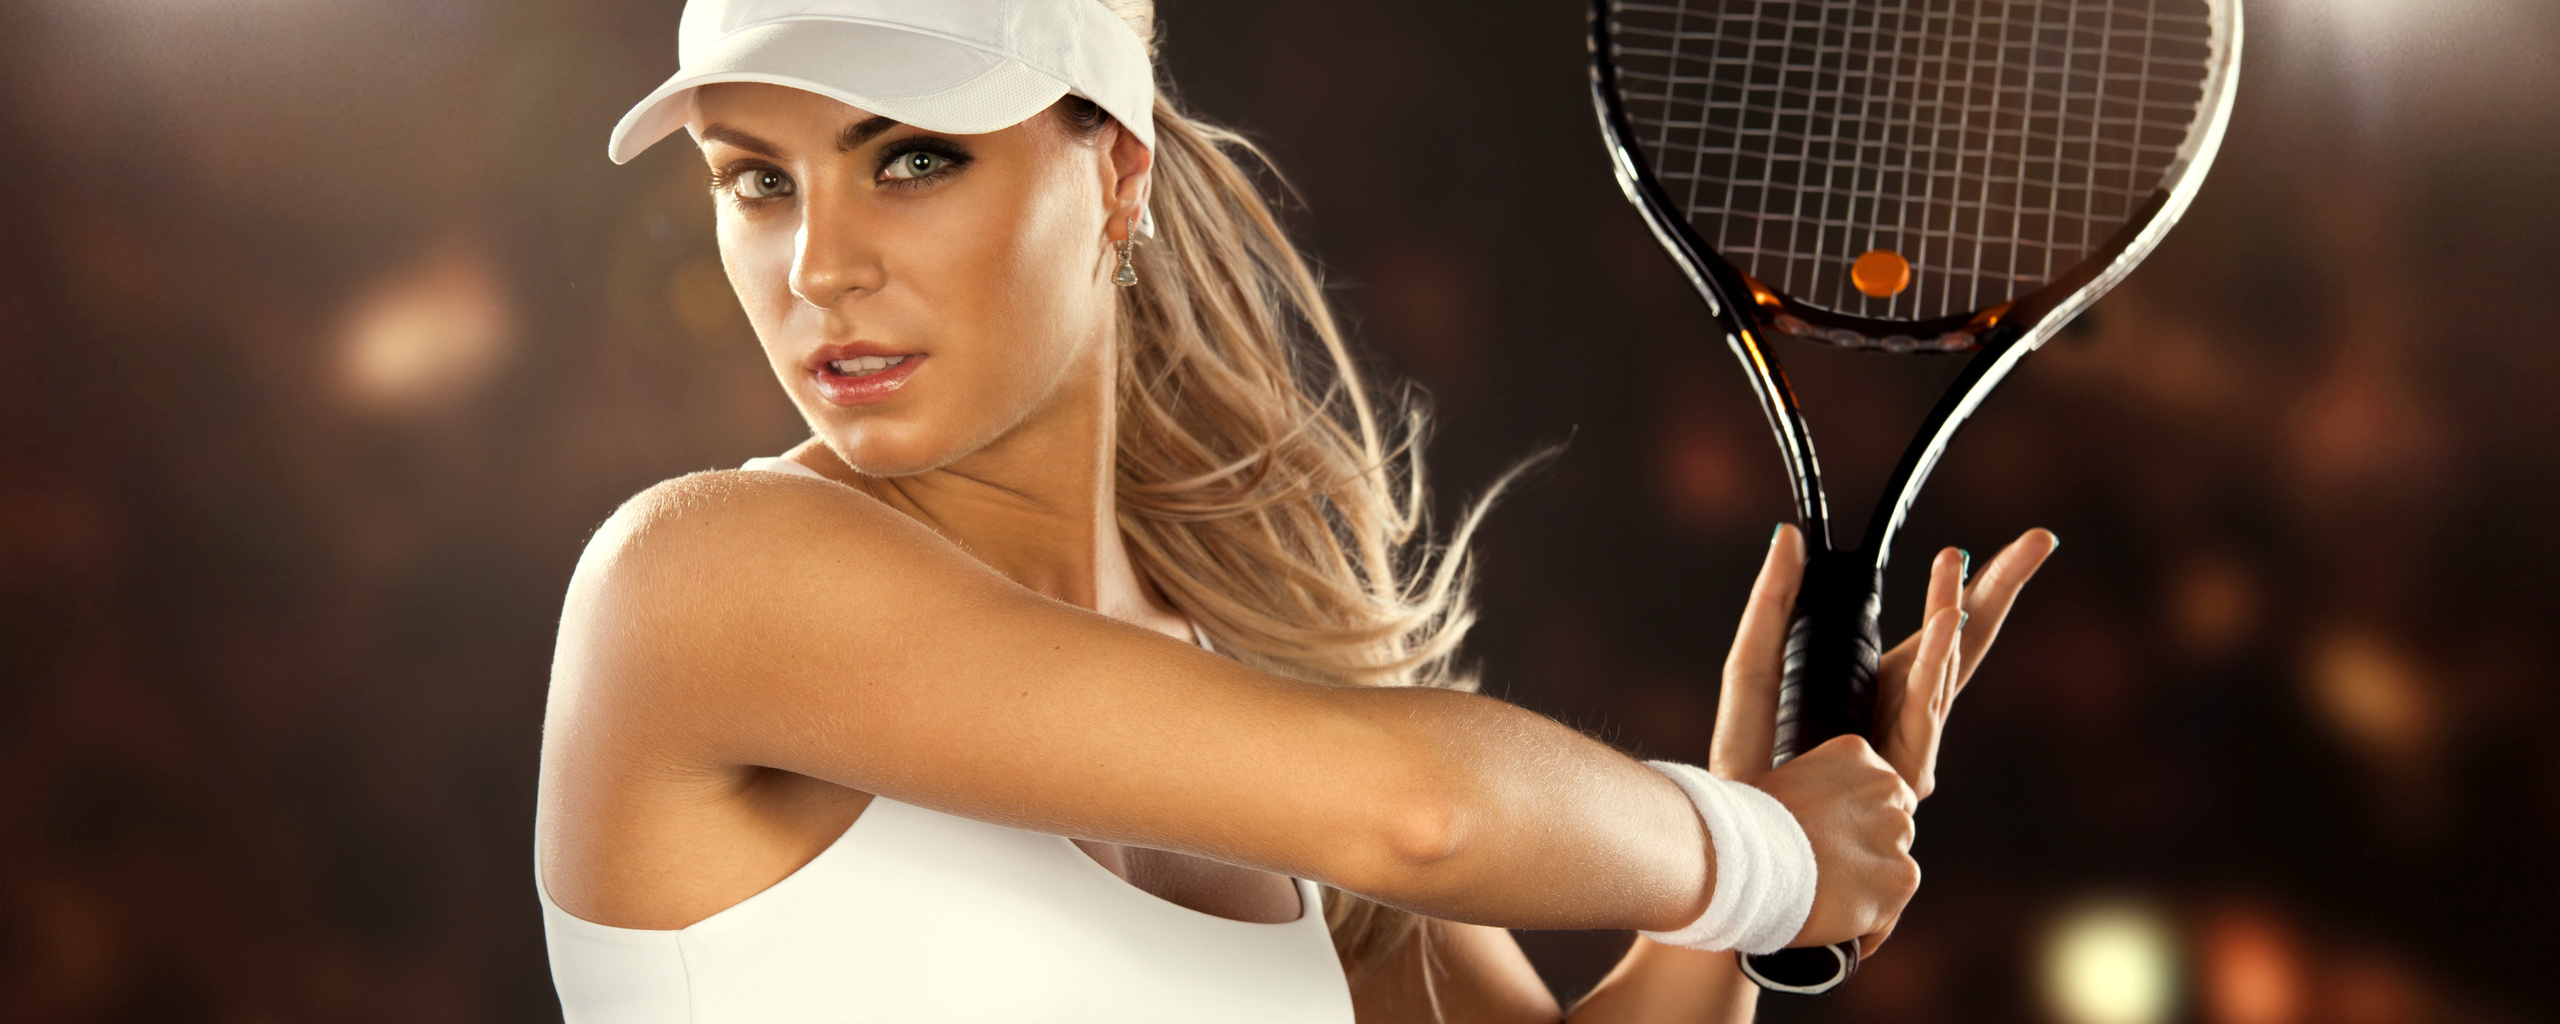 tennis-beauty-pic.jpg